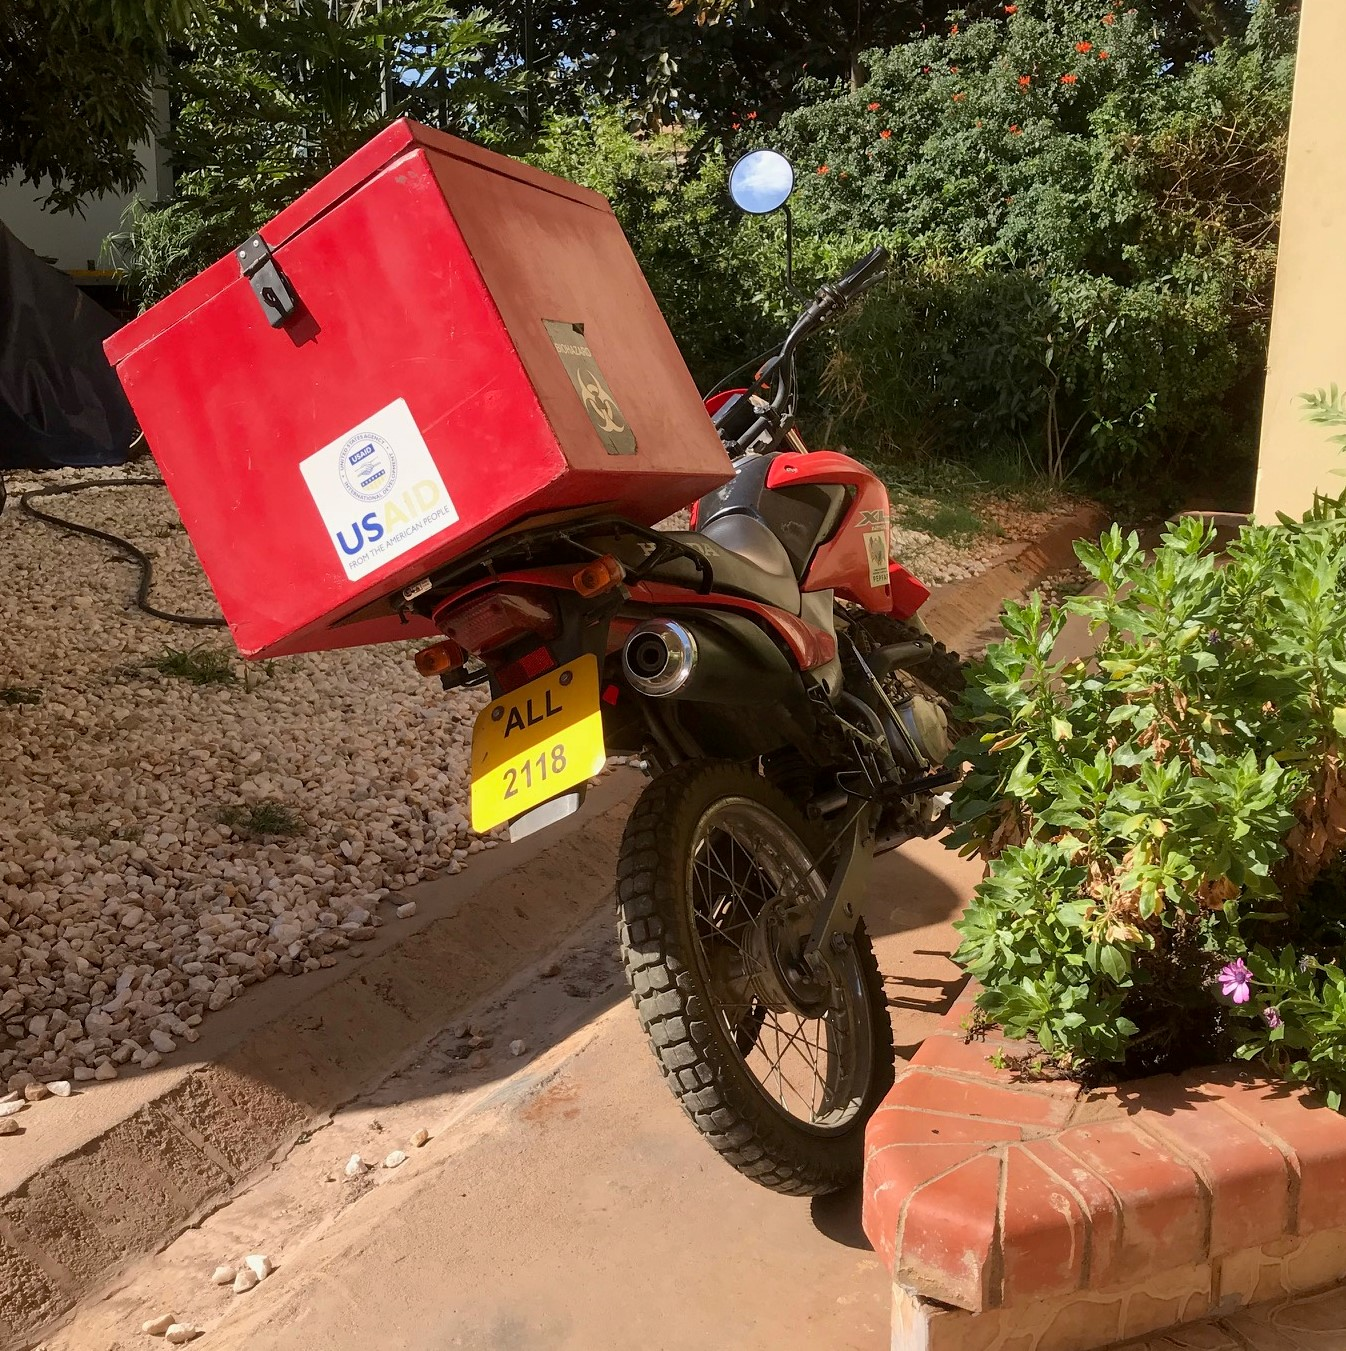 Samples are transported from the site to the lab by motorcycle to avoid traffic delays